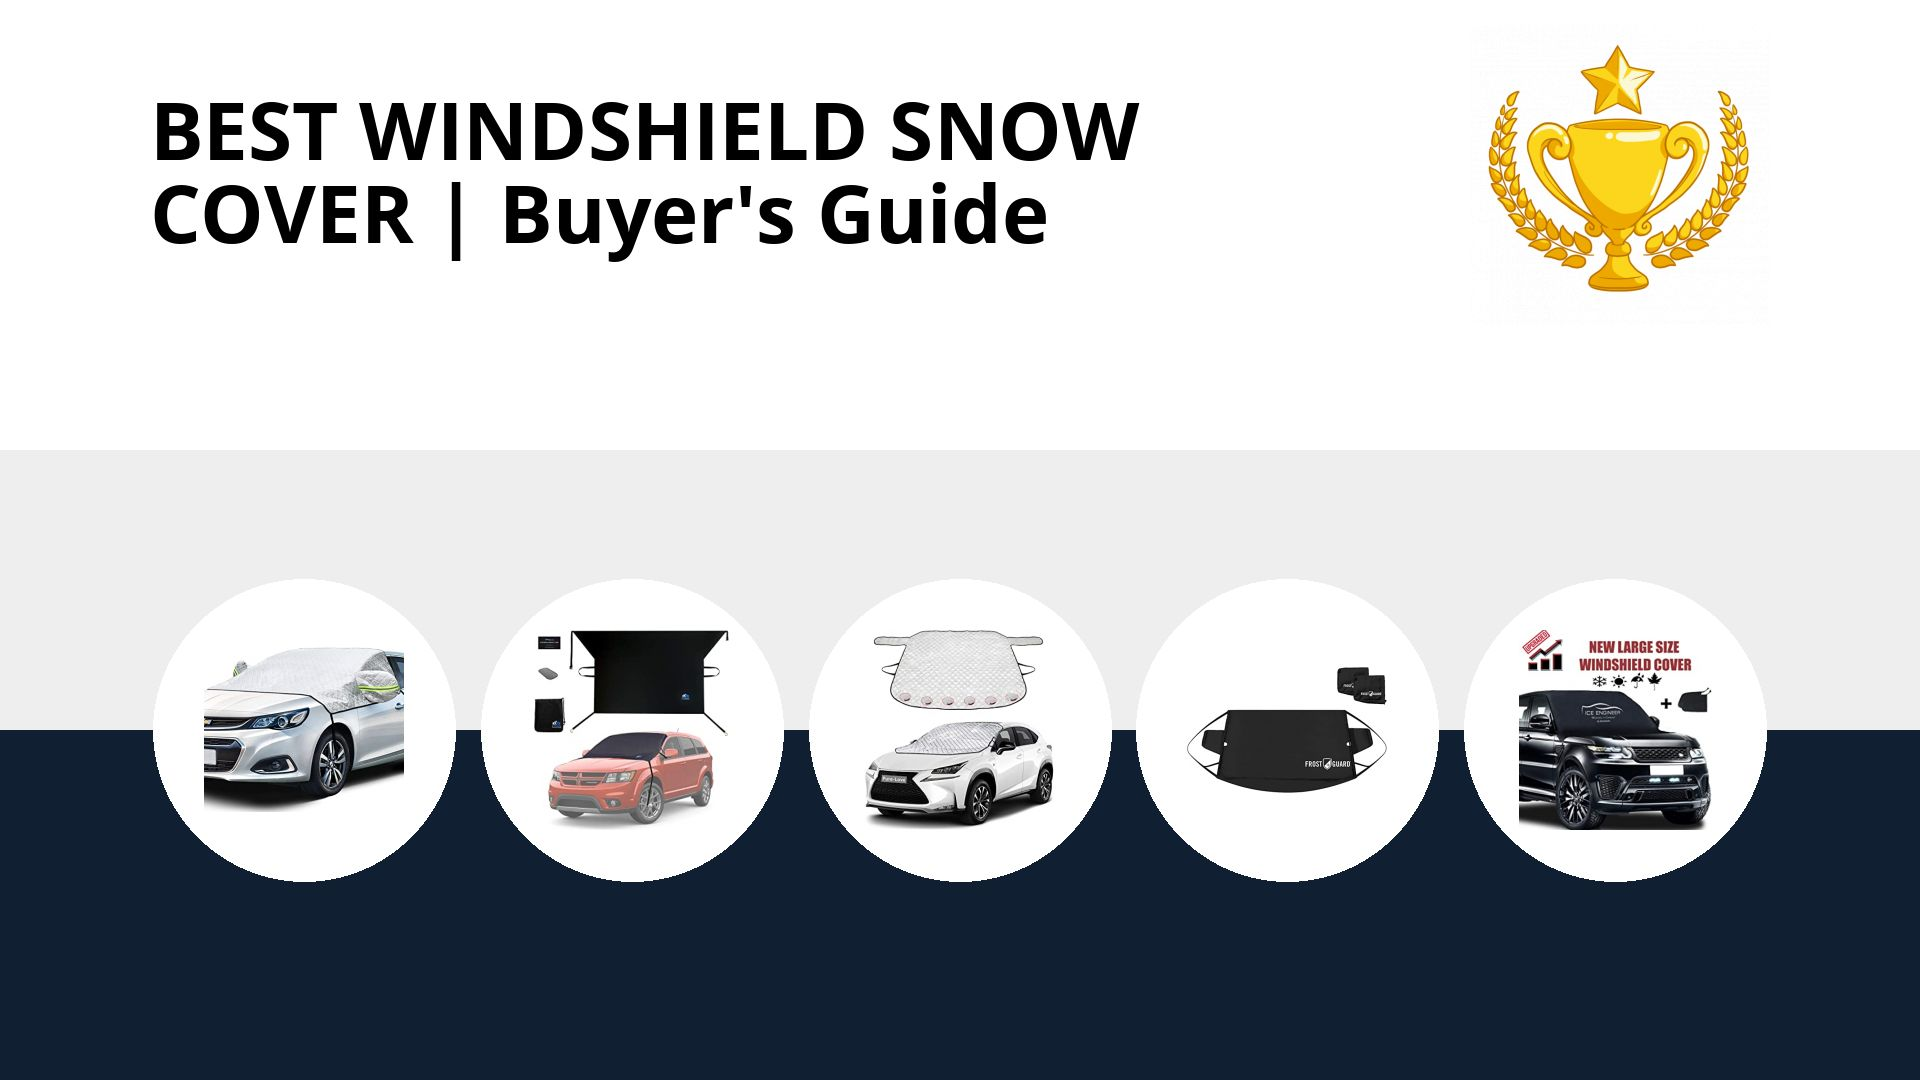 Best Windshield Snow Cover: image